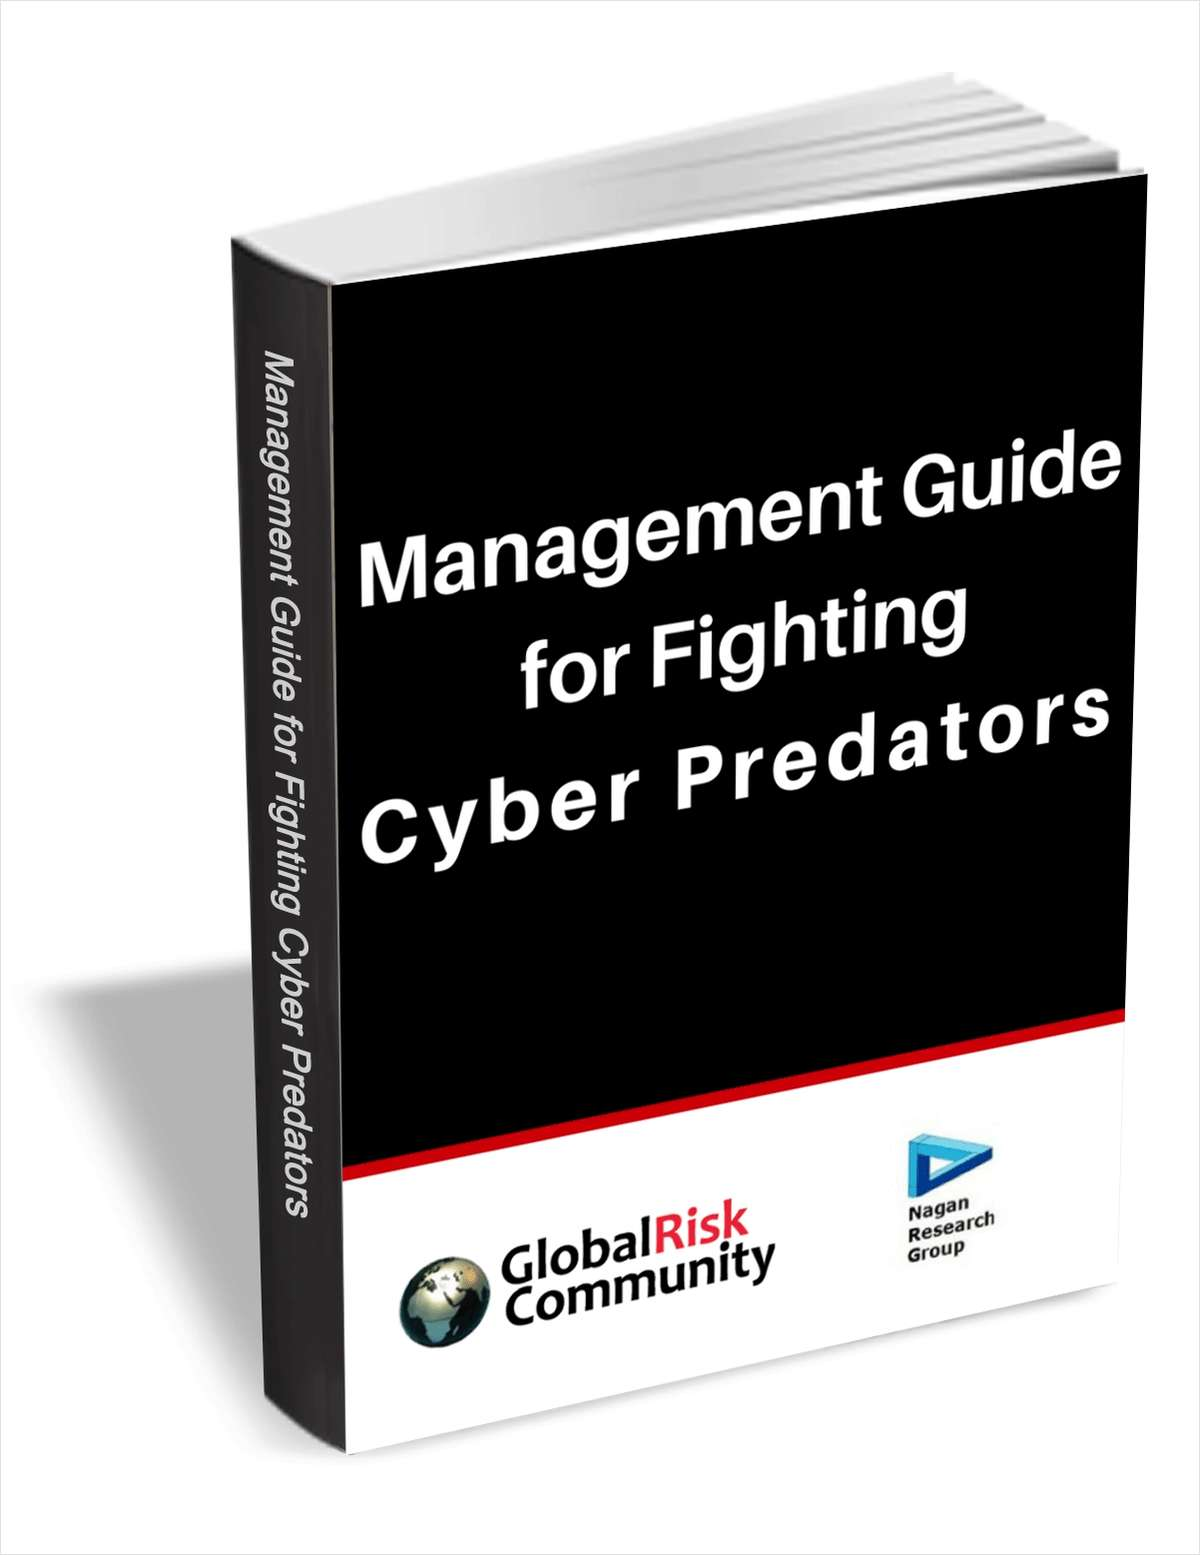 Management Guide for Fighting Cyber Predators